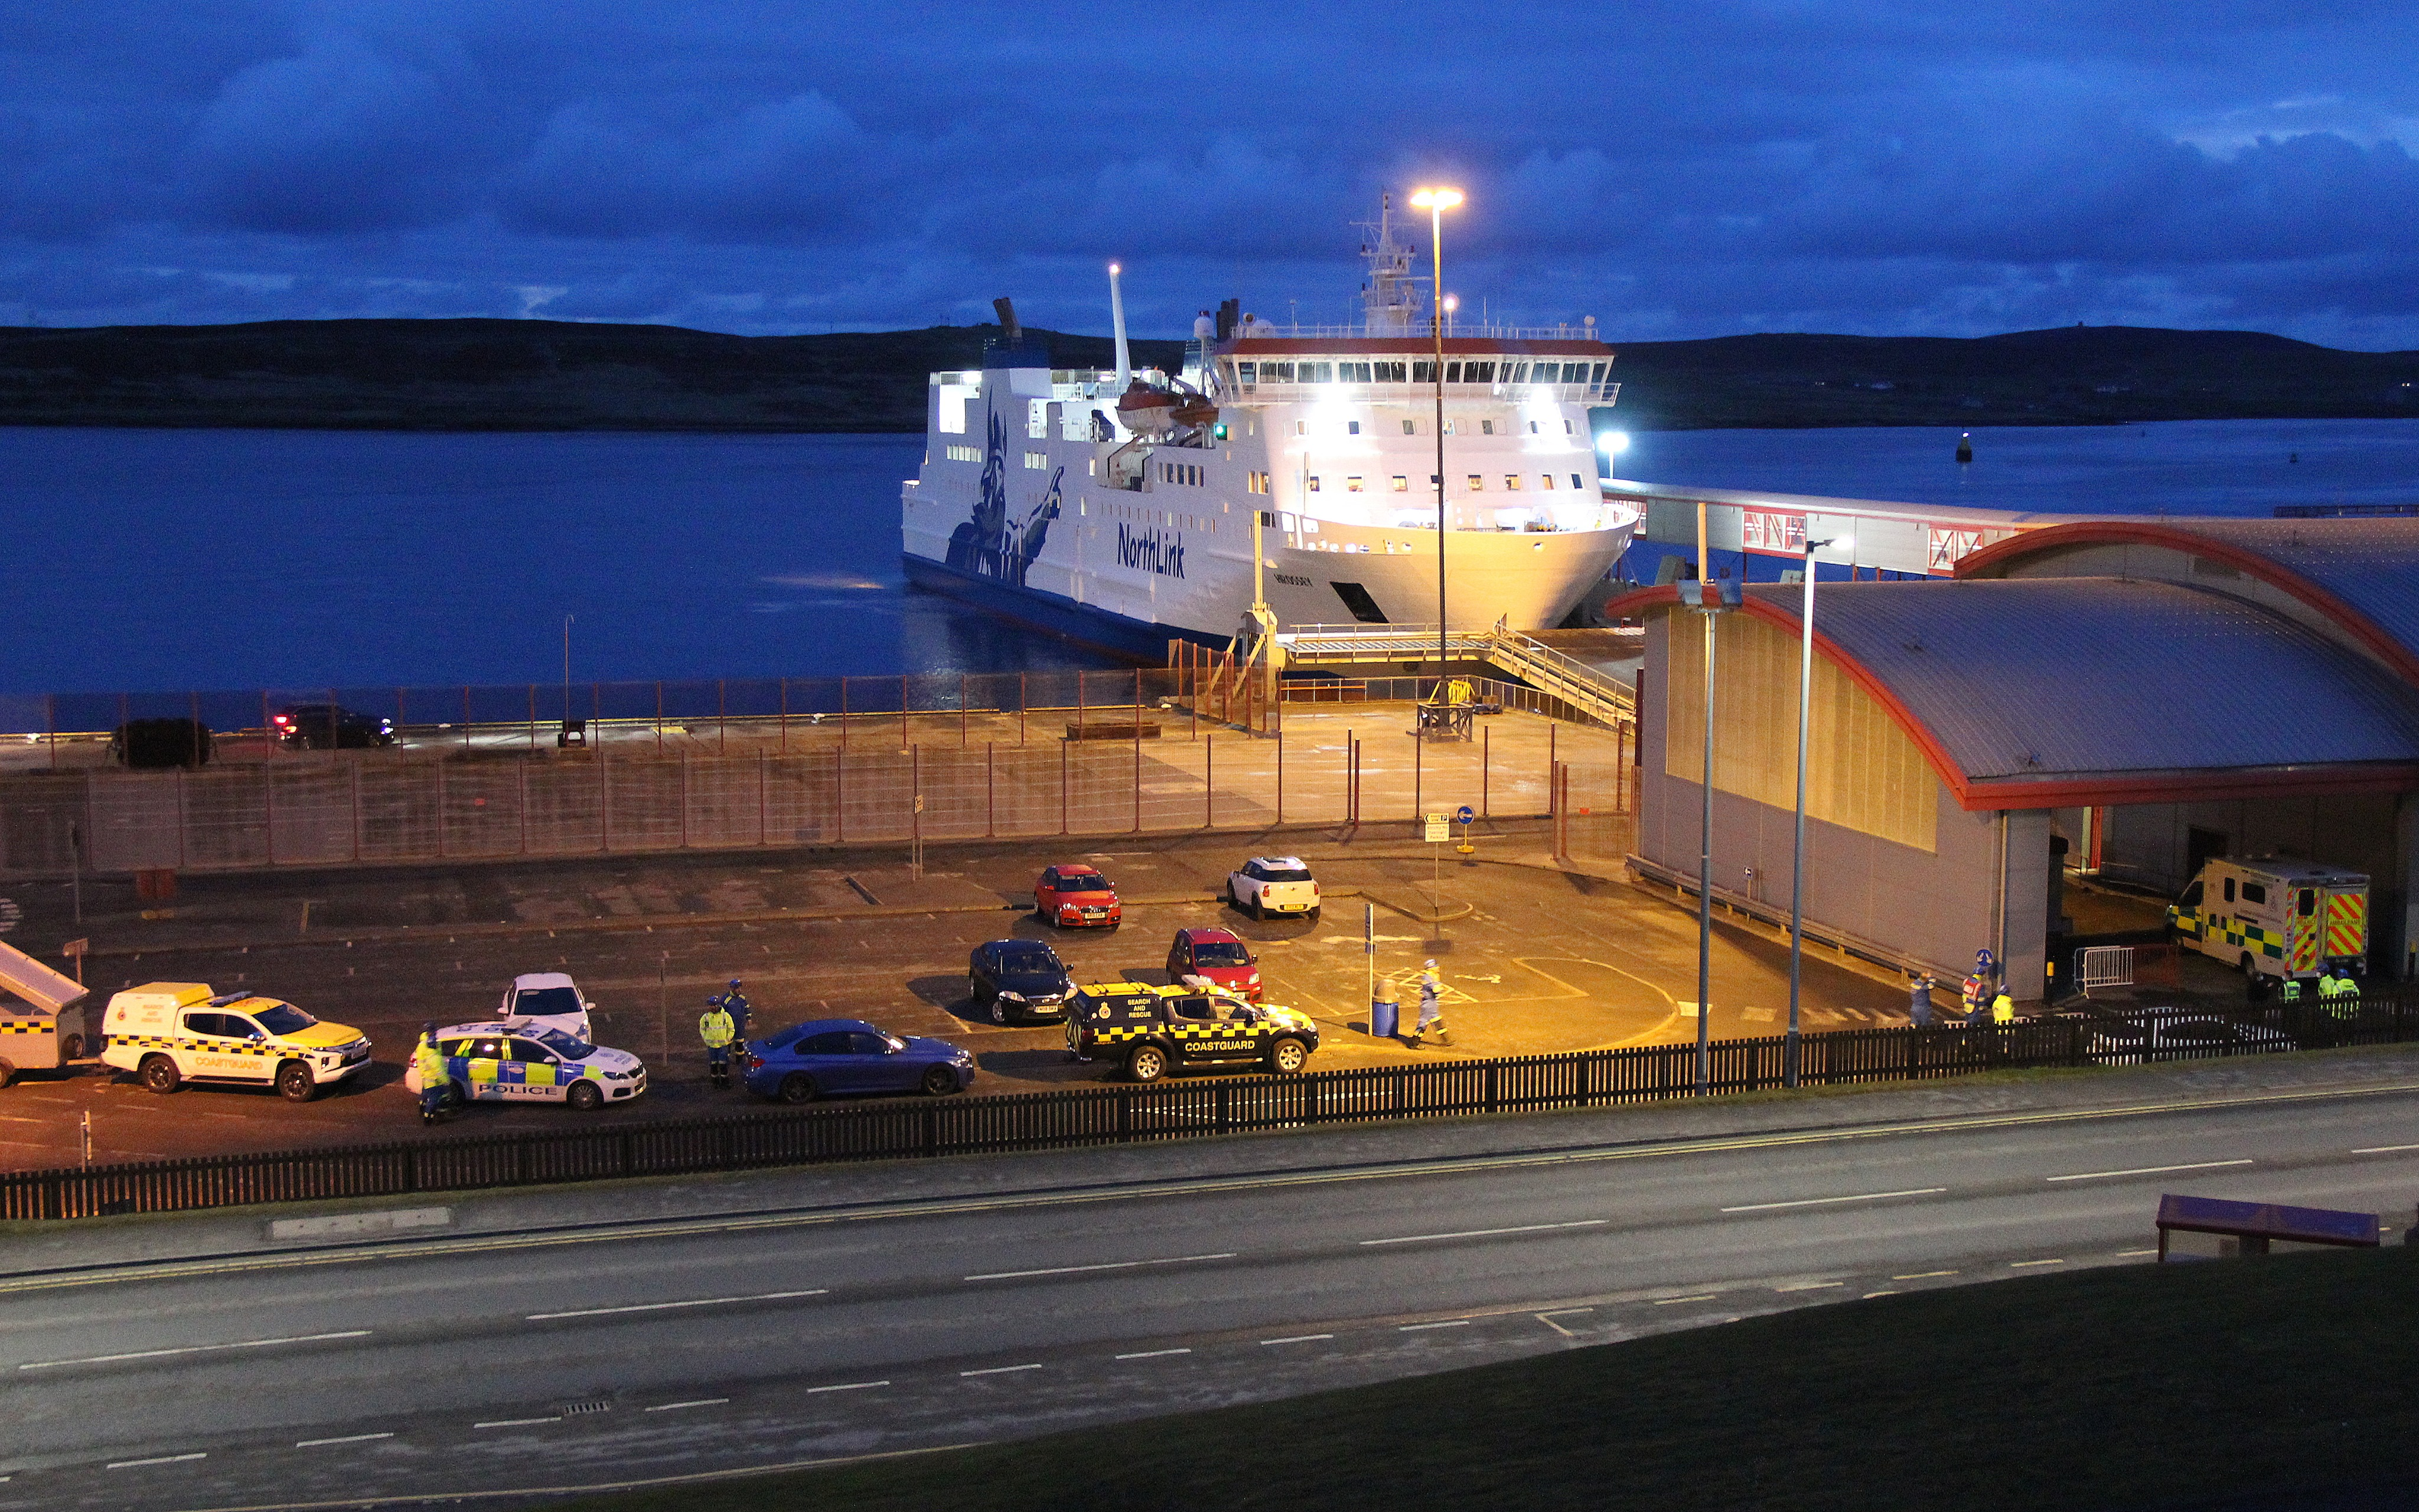 NorthLink ferry returns to harbour